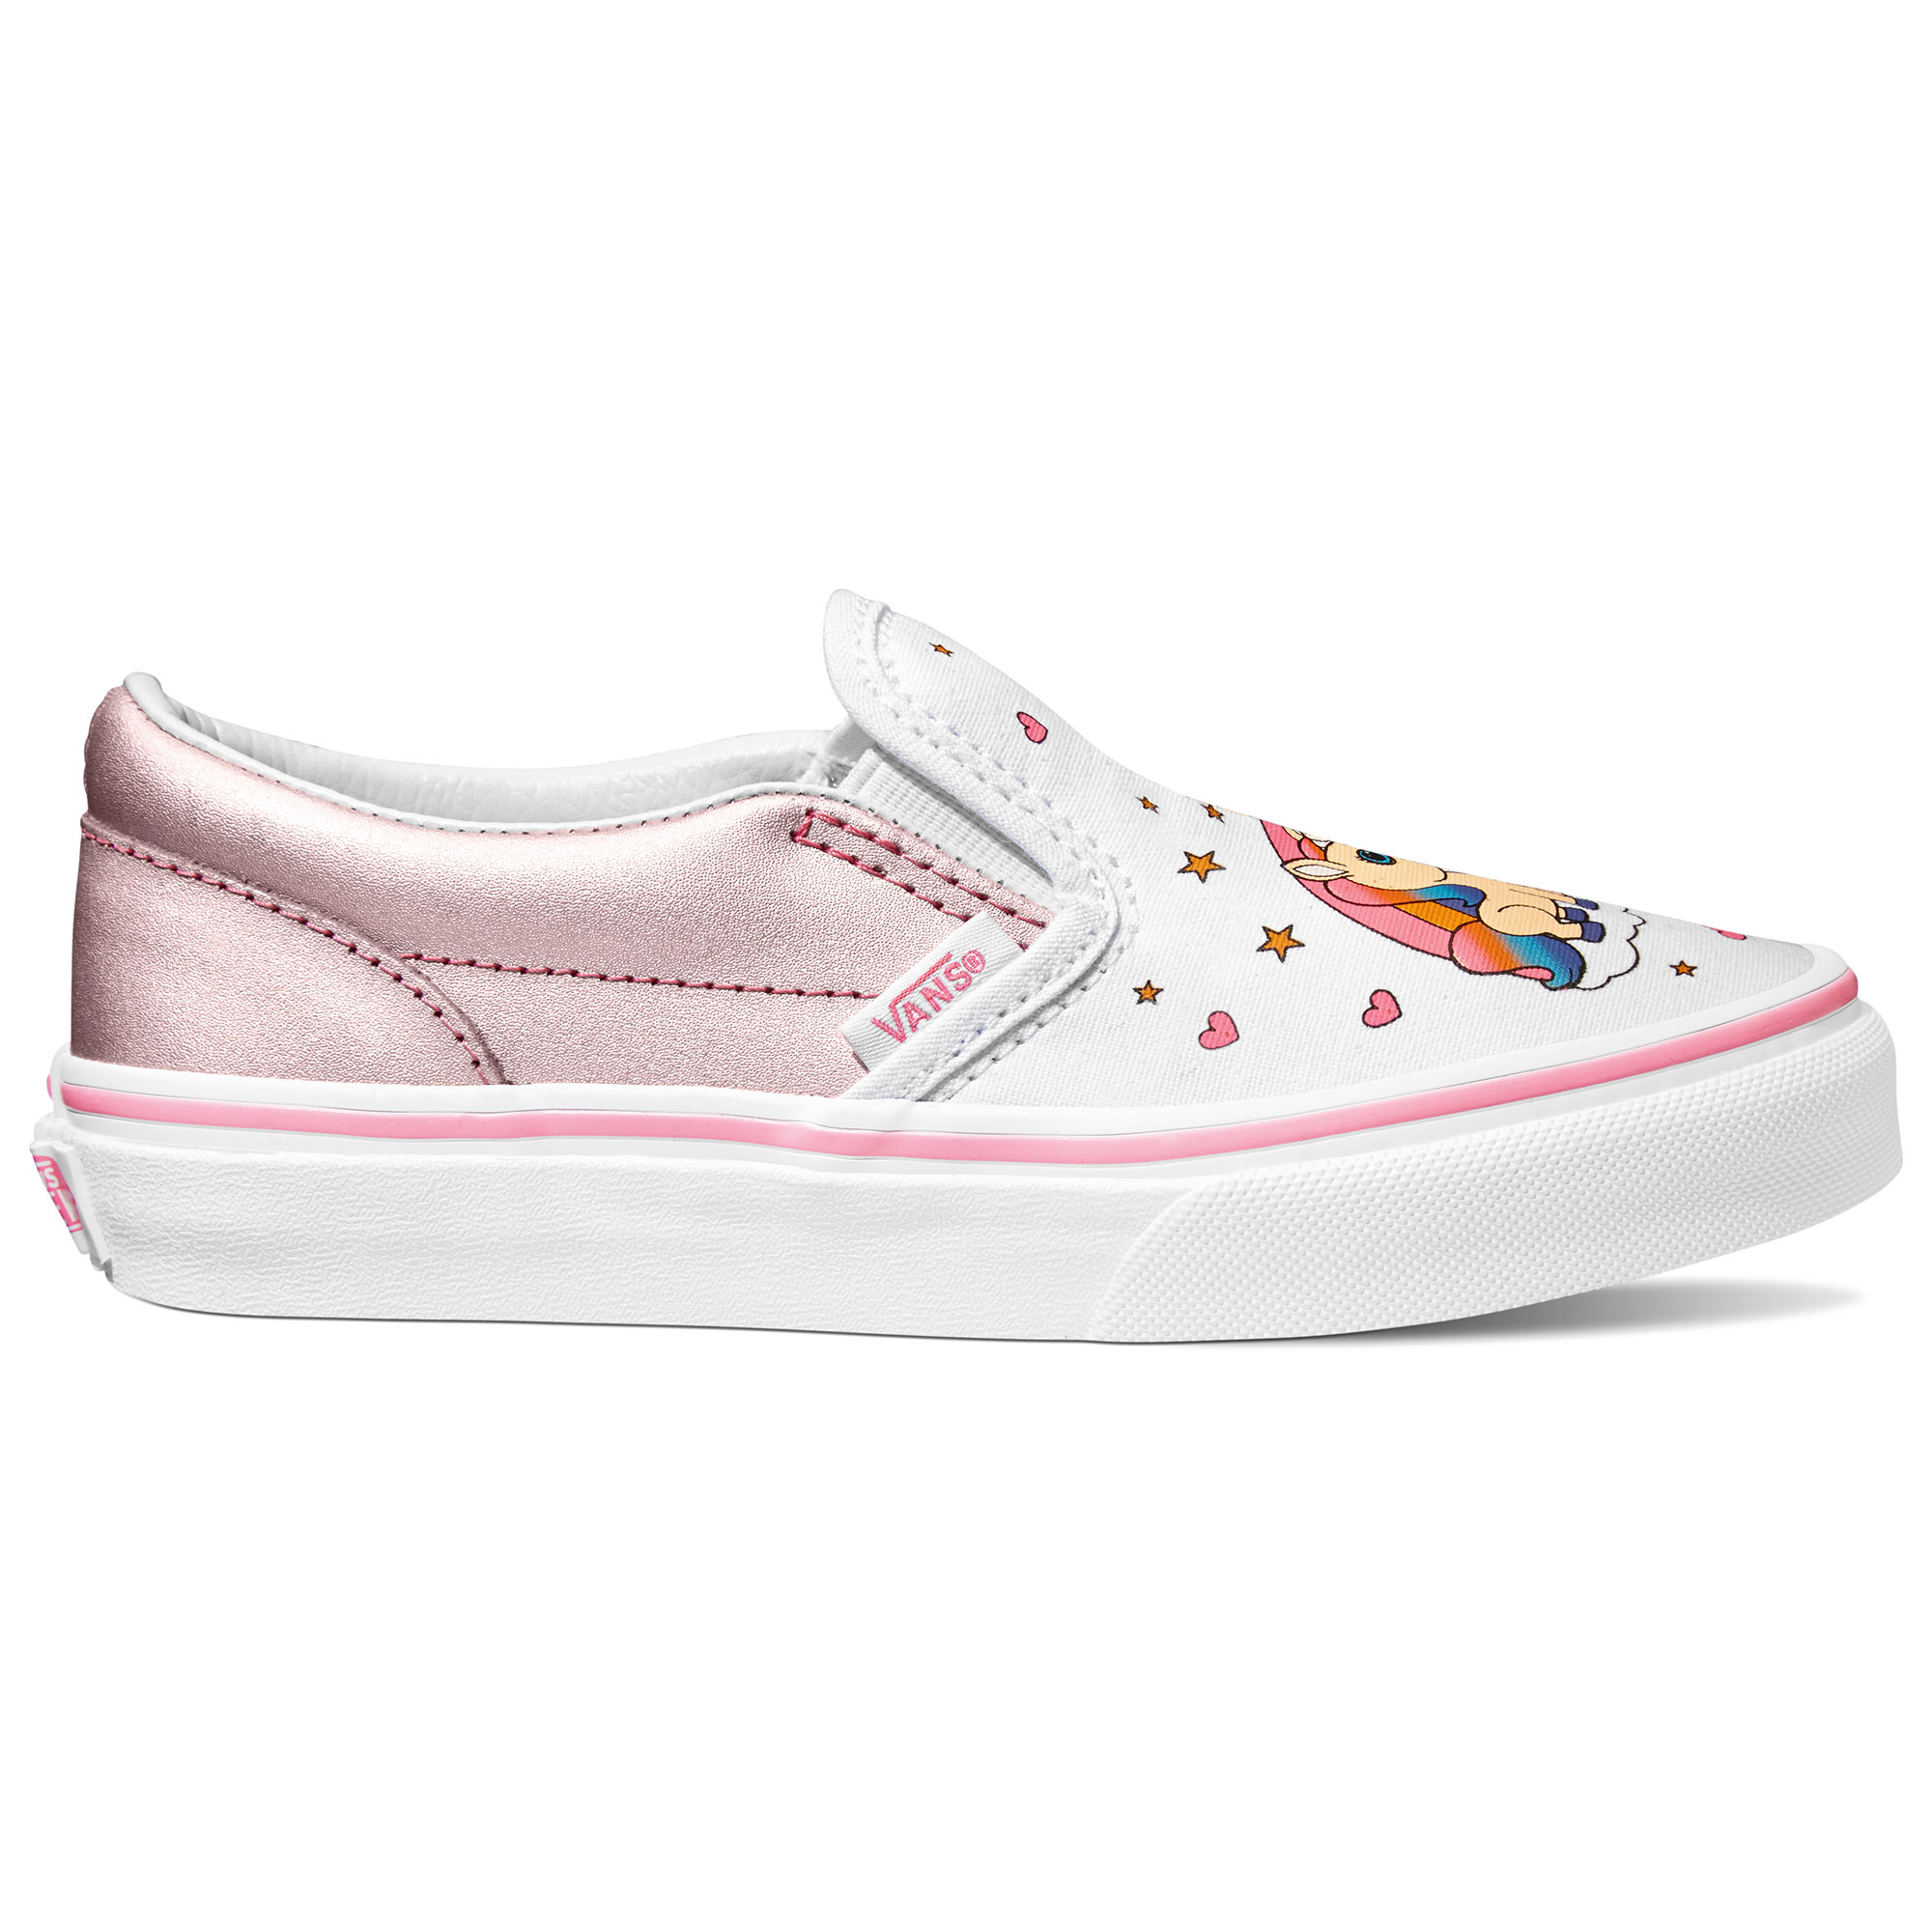 00d7381652a37 Unicorn Shoes Vans ✓ Shoes Collections